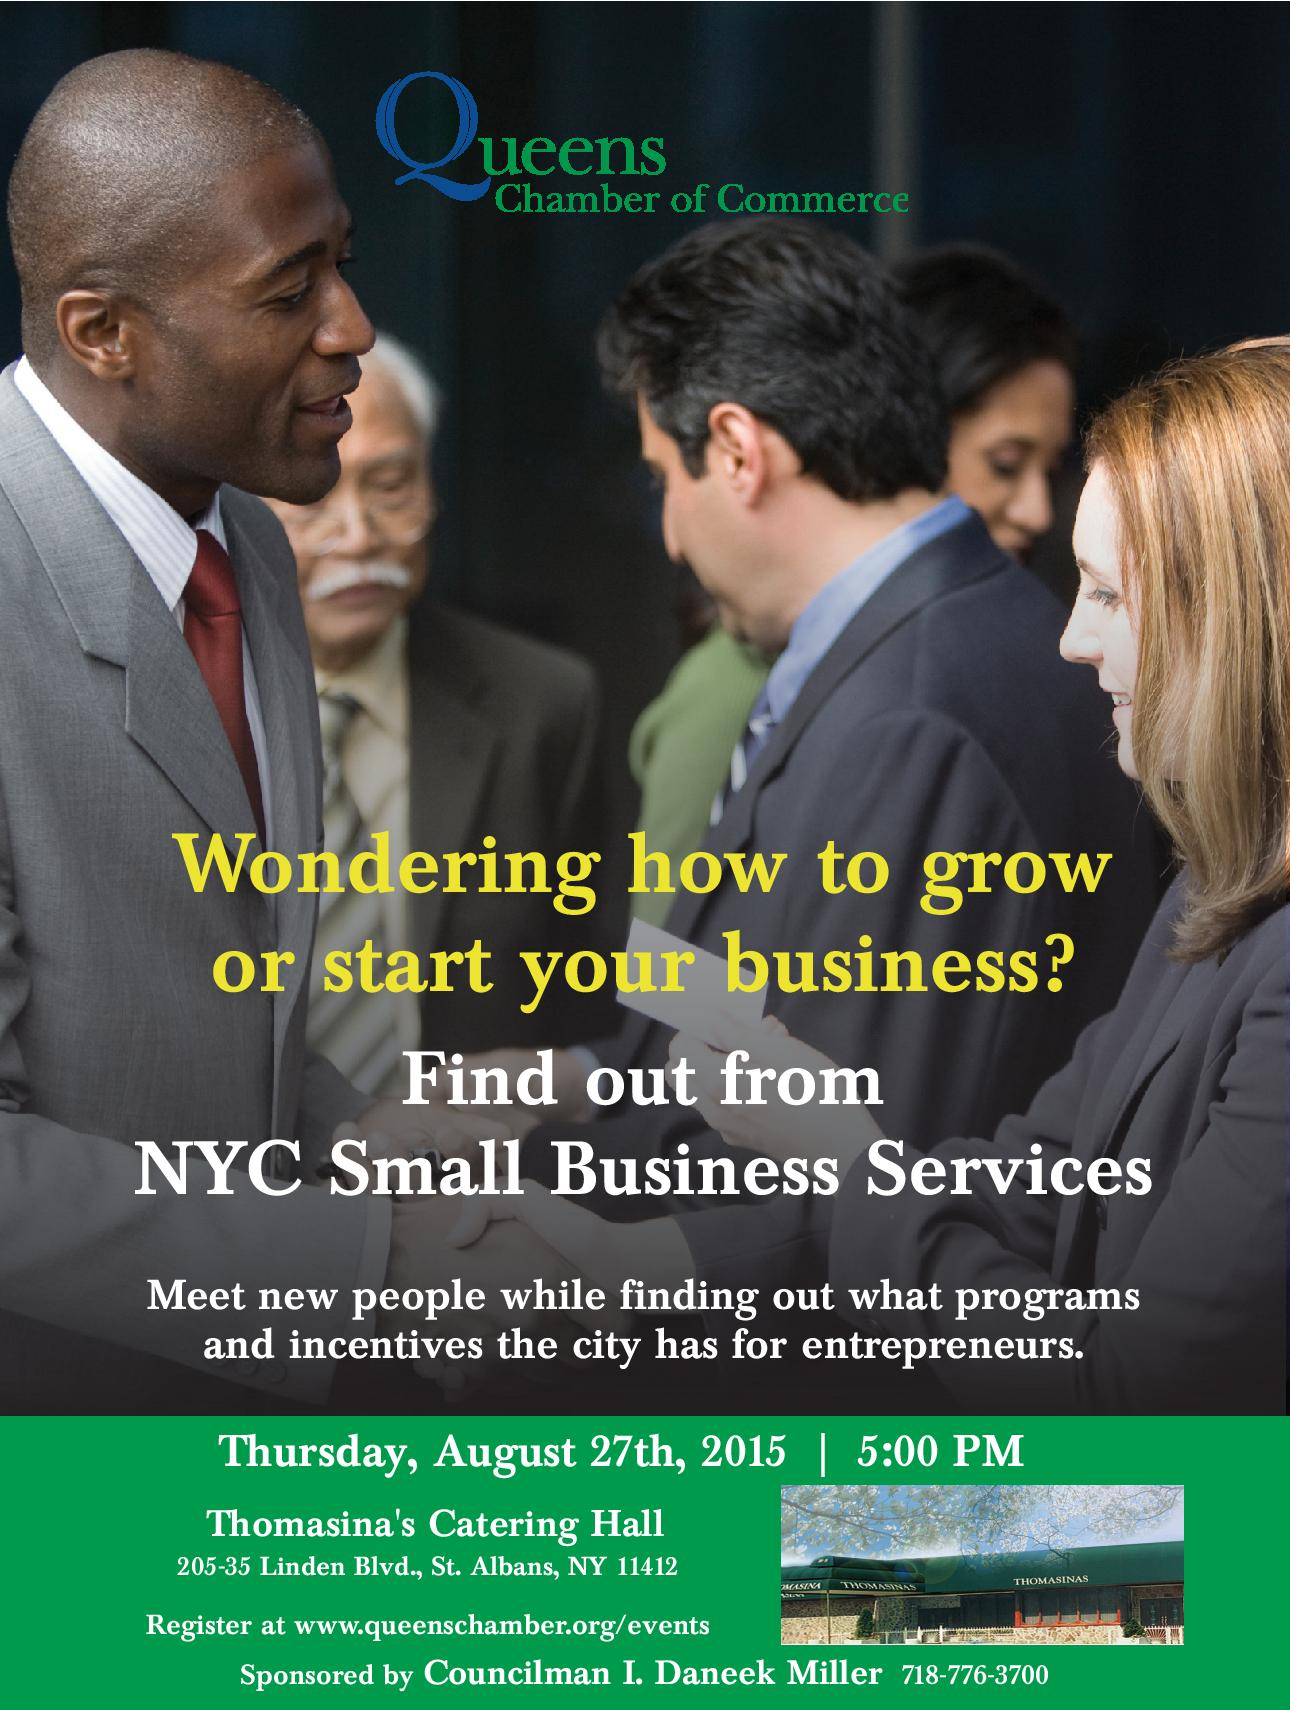 Queens Chamber Of Commerce Small Business Services Meet And Greet